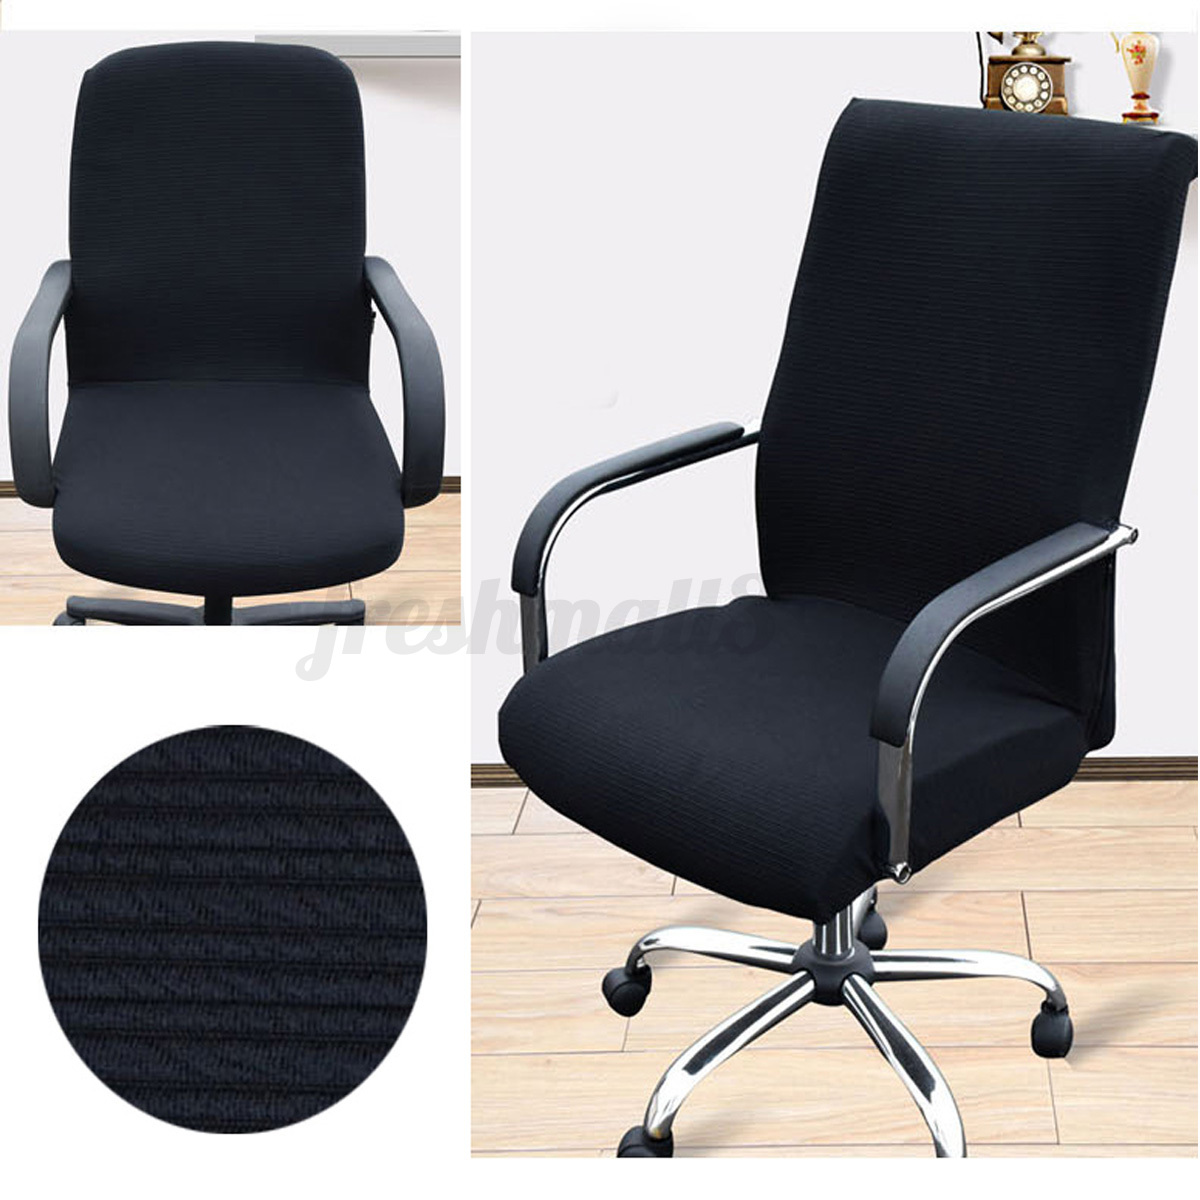 chair slip cover stretch office armchair seat protective. Black Bedroom Furniture Sets. Home Design Ideas